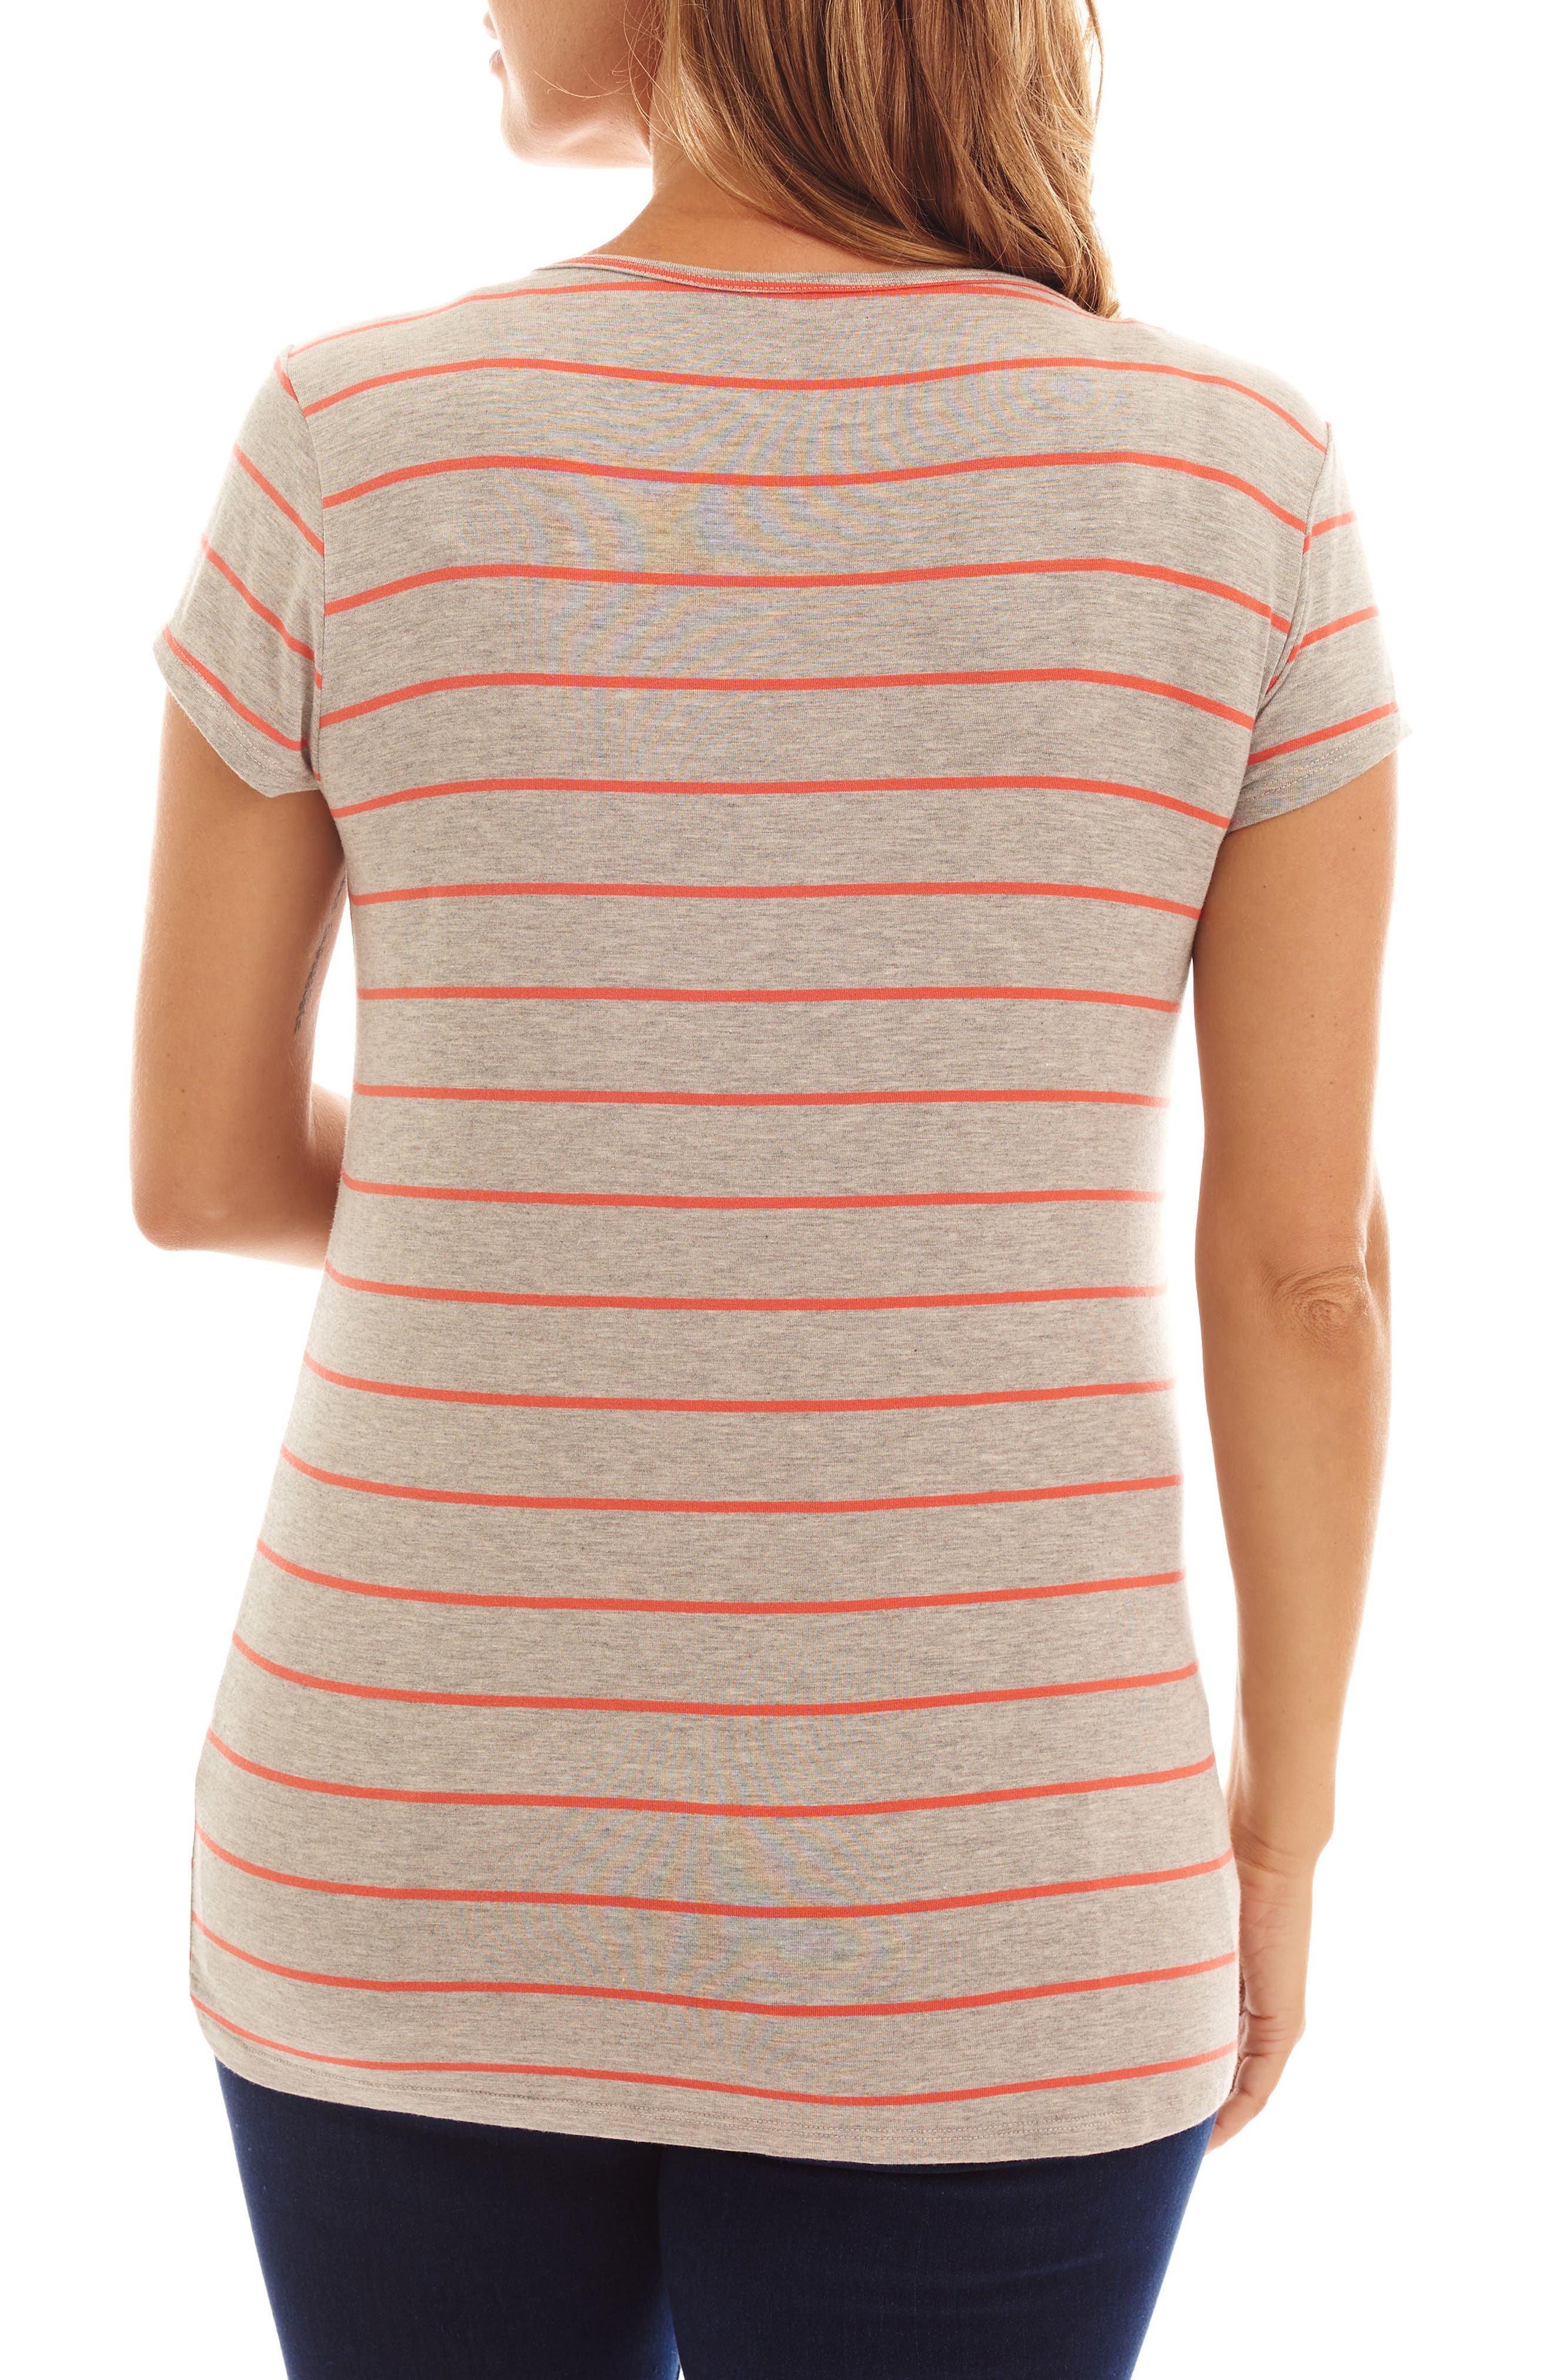 Alternate Image 2  - Everly Grey Jonelle Stripe Maternity/Nursing Top